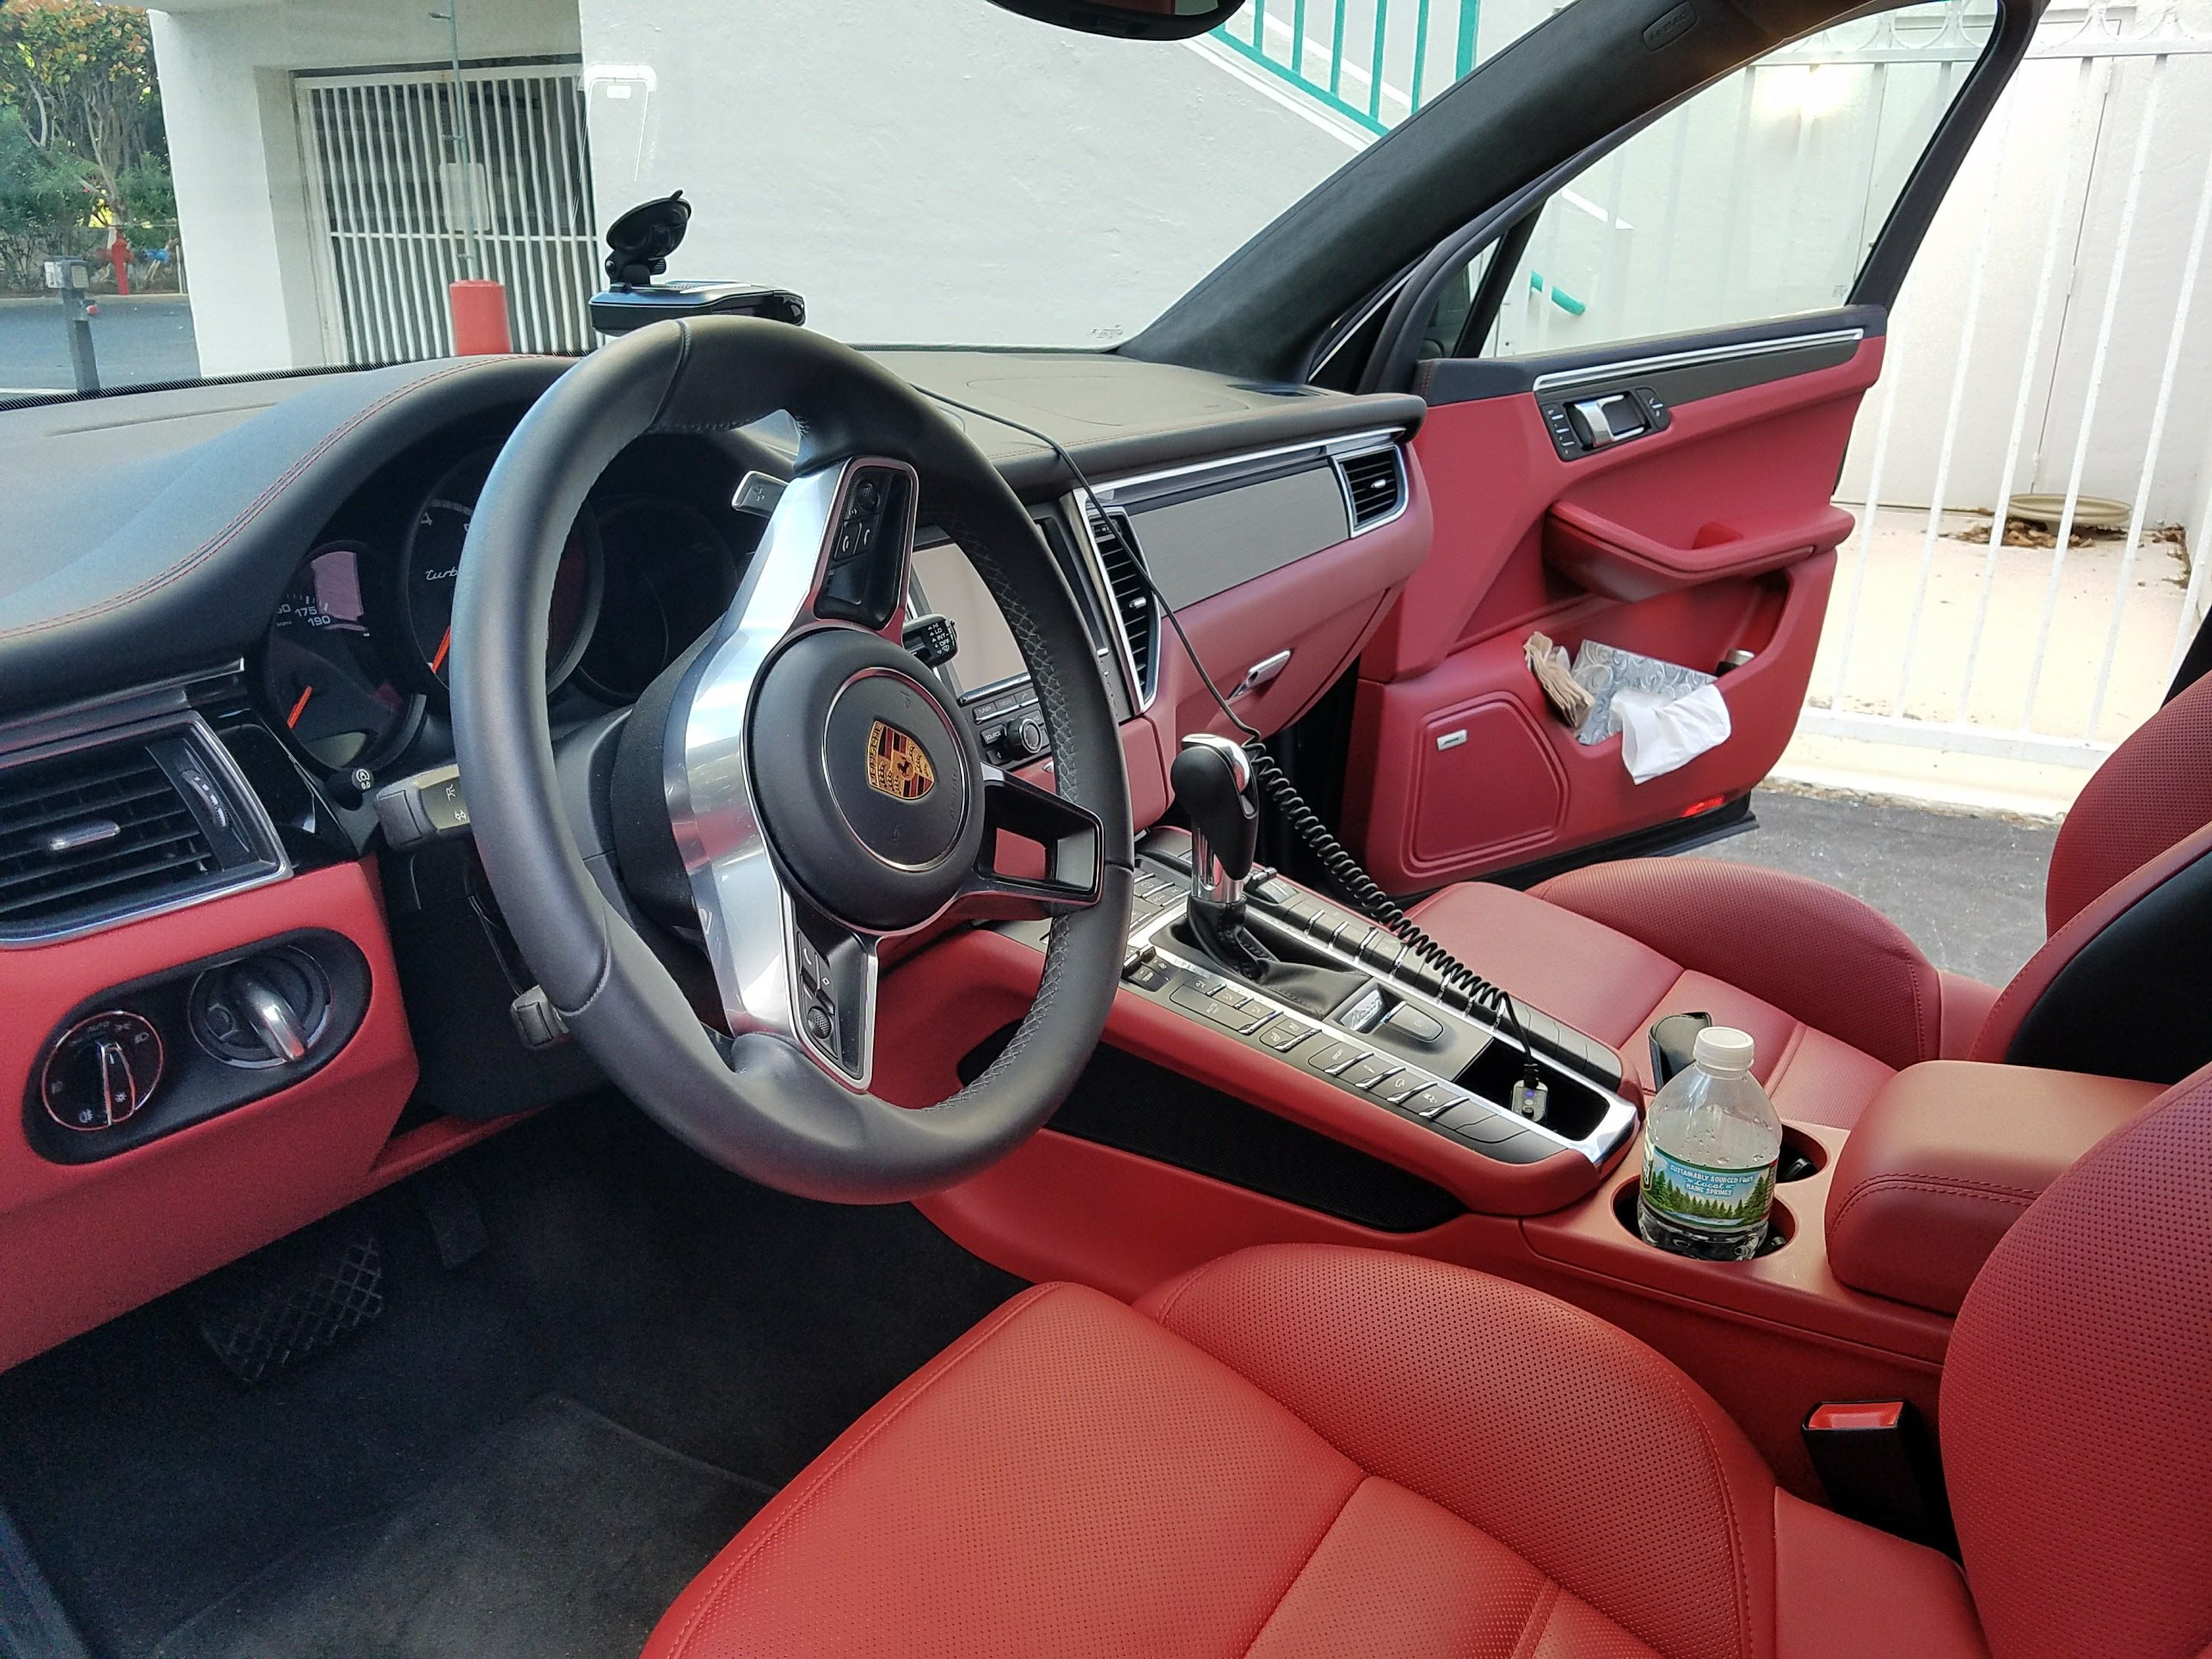 Let us take care of your precious and you won't regret 🔥 . 📲 (561) 403-9586 call or text 📩 bocaraton@fibrenew.com . #porsche #autodetailing #interiorcleaning #porschelovers #cardetailing #restoration #detailing #carcleaning #detailersofinstagram #broward #bocaraton #fibrenew #southflorida #westpalmbeach #cardealership